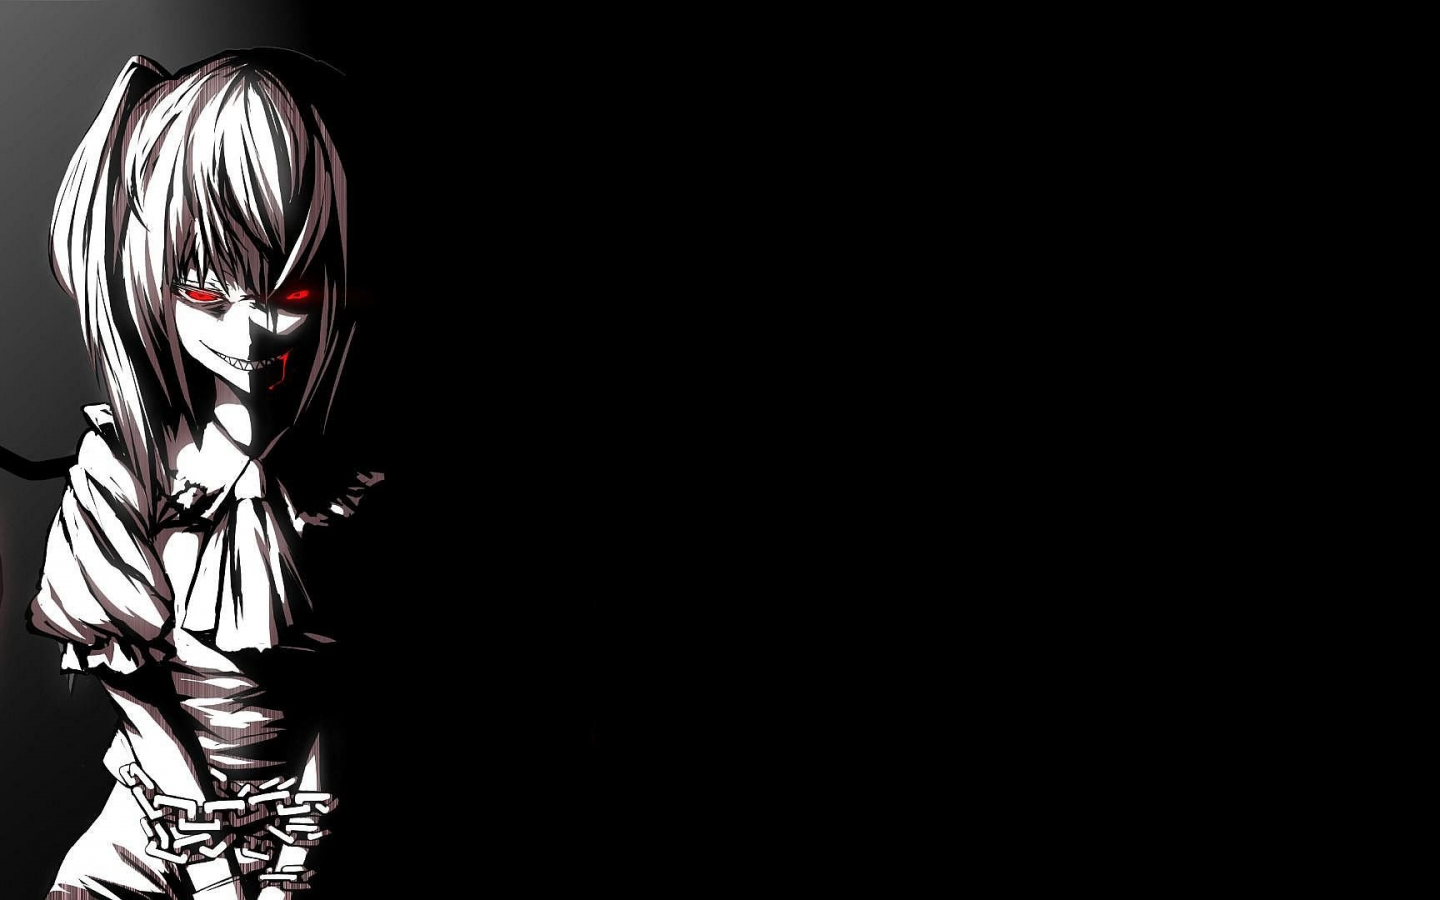 Anime Wallpaper Hd Aesthetic Anime Wallpapers Dark